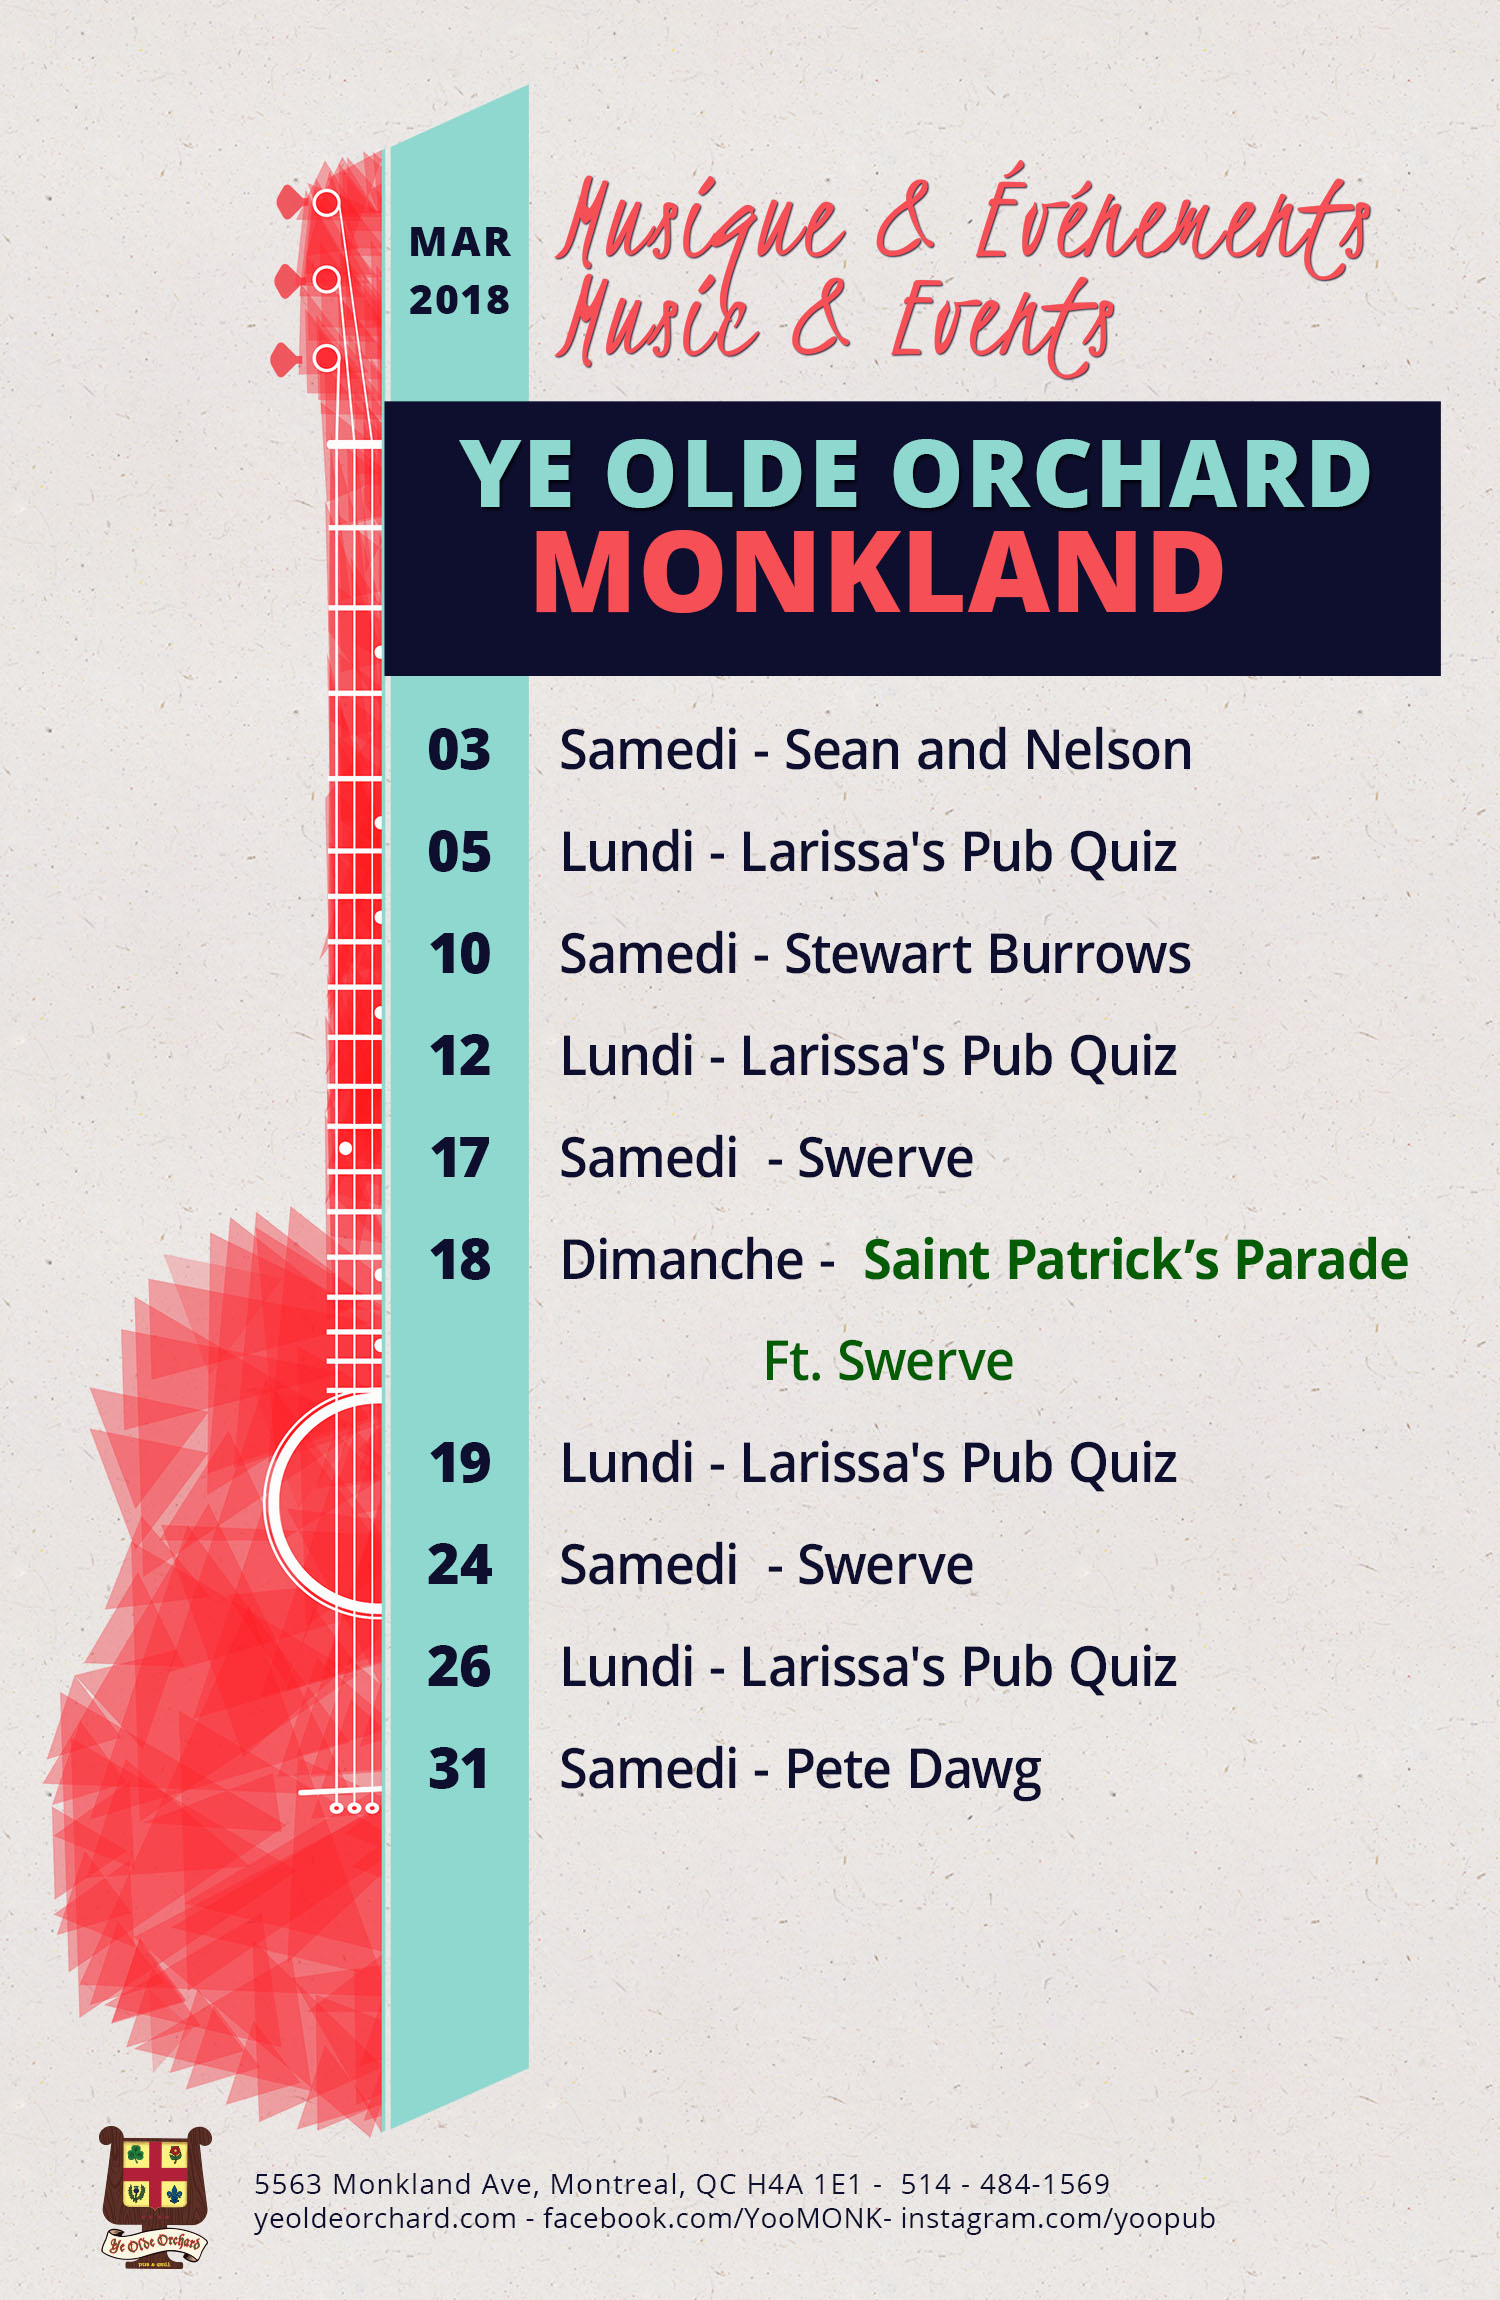 ye-olde-orchard-pub-music-and-events-calendar-Monkland-UPDATED